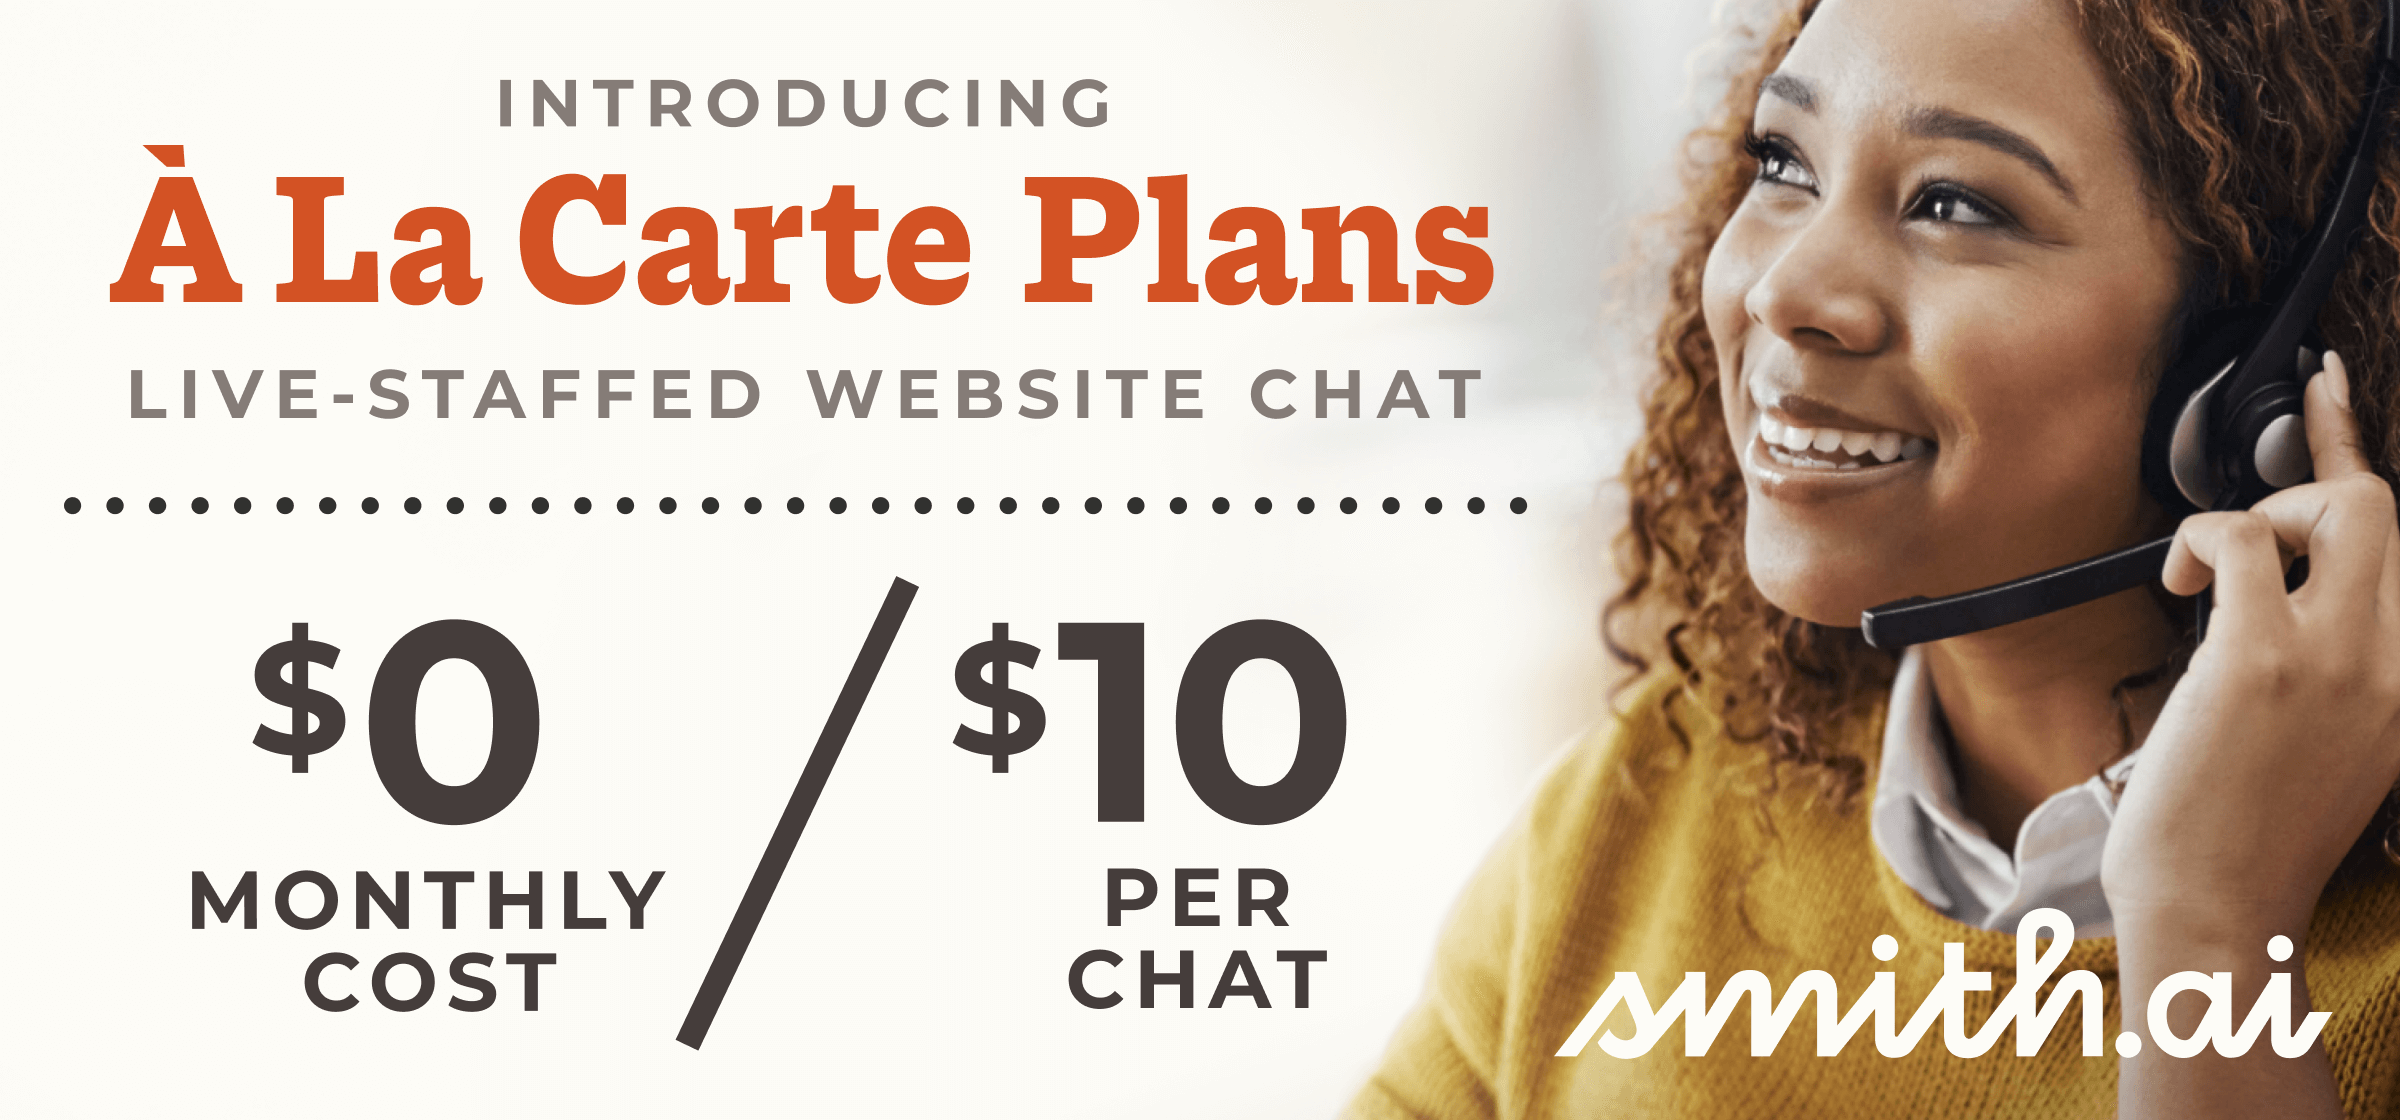 New! À La Carte Plan Offers Live-Staffed Website Chat for $0 Monthly Cost — Only Pay Per-Chat!